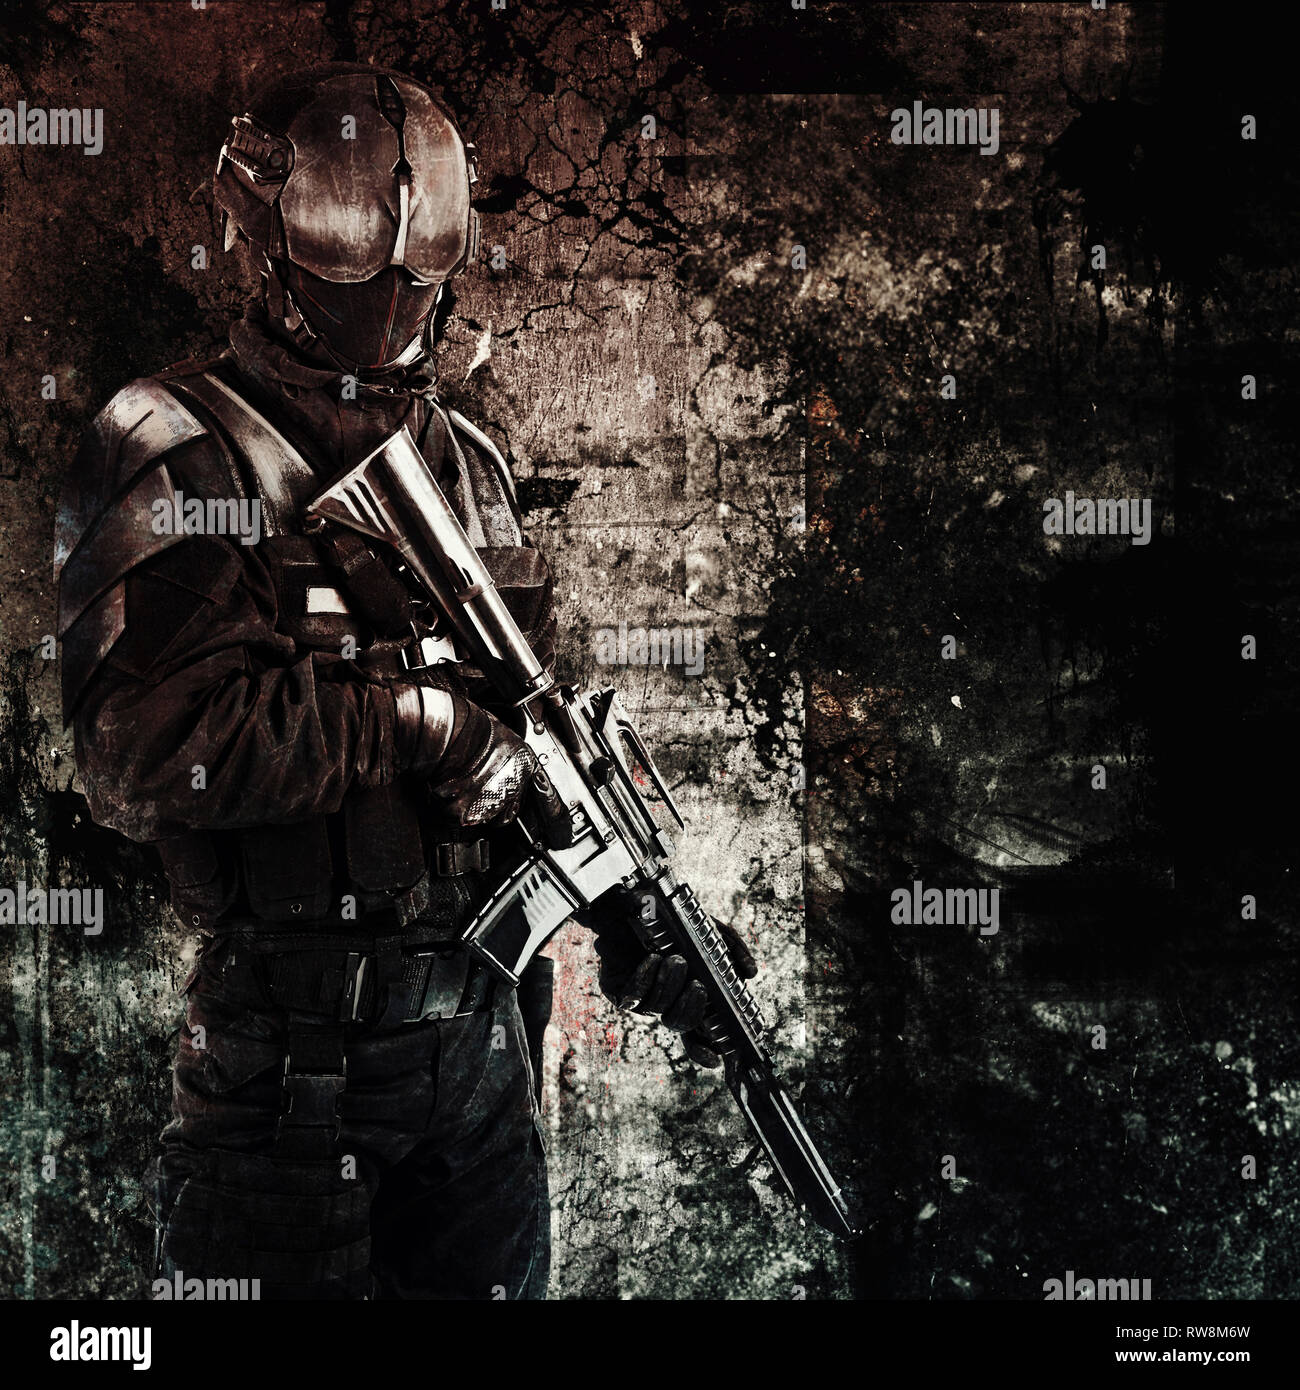 Hand drawn image of a spec ops police officer SWAT. Stock Photo